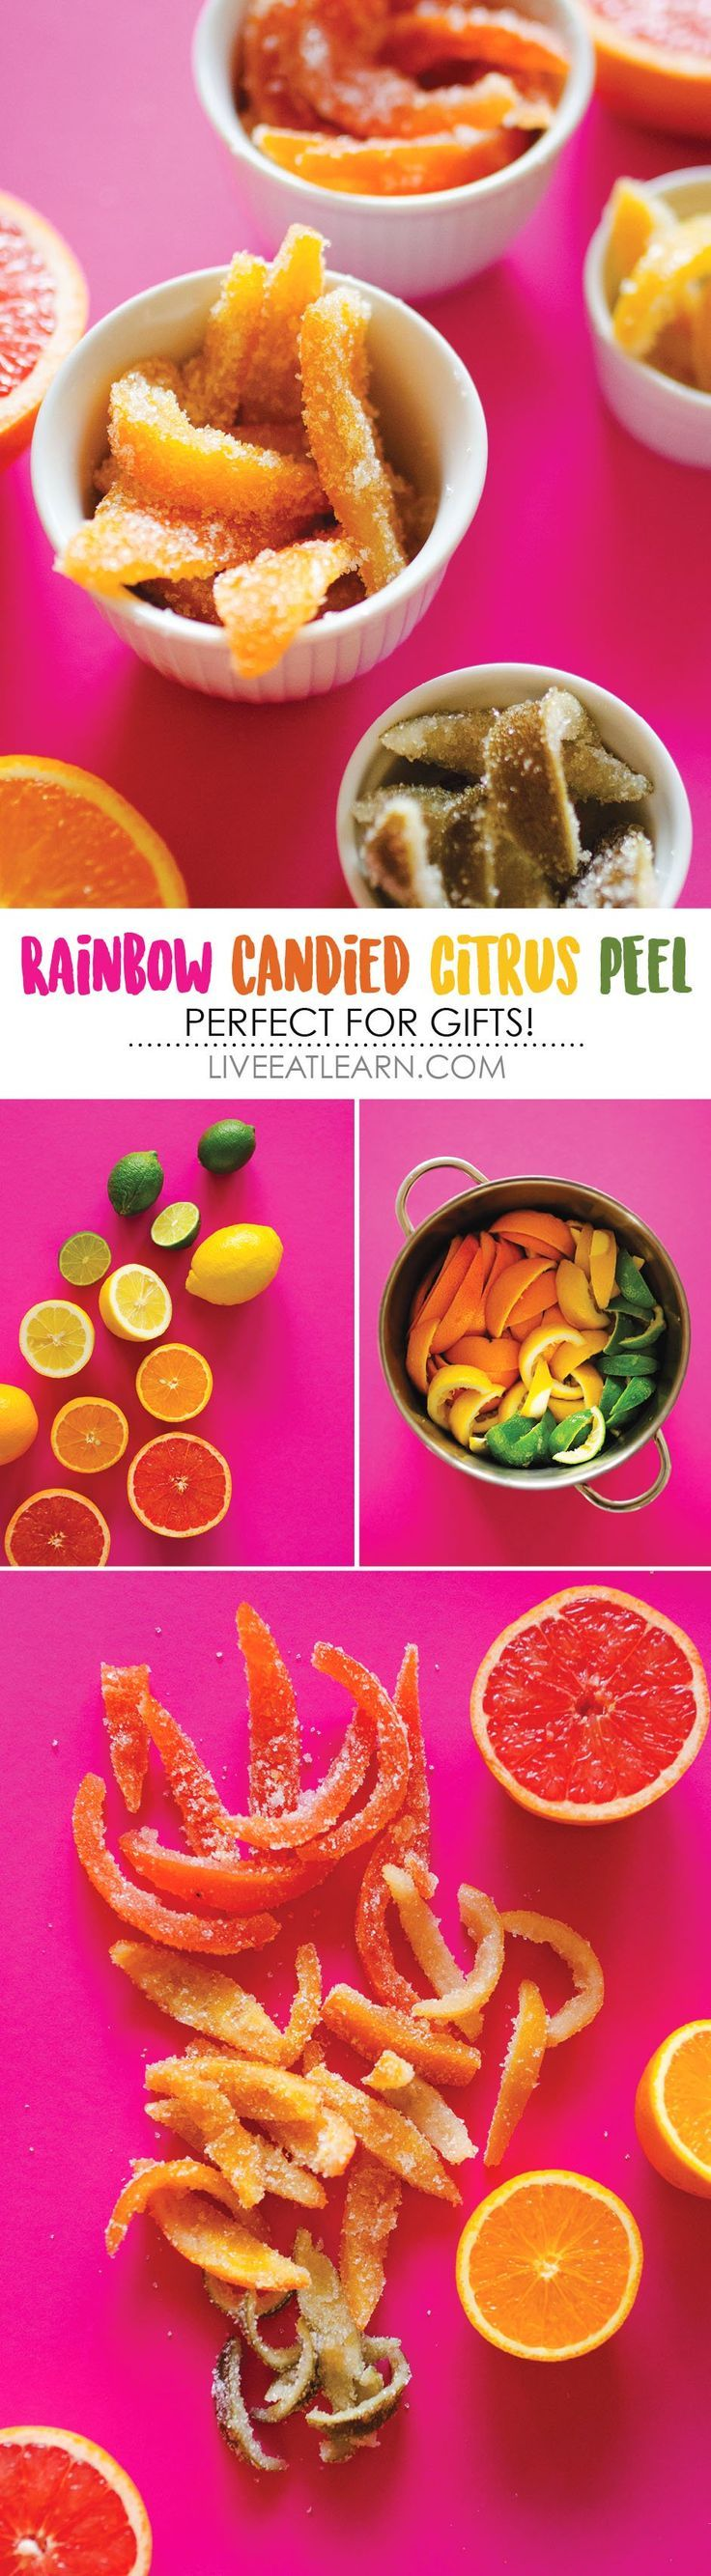 This Rainbow Candied Citrus Peel recipe transforms your leftover citrus peels into a delectable holiday candy! Give them as a fun, flavor-packed homemade gift or chop them up for topping yogurt and cereal for yourself. If you're feeling overly decadent, d